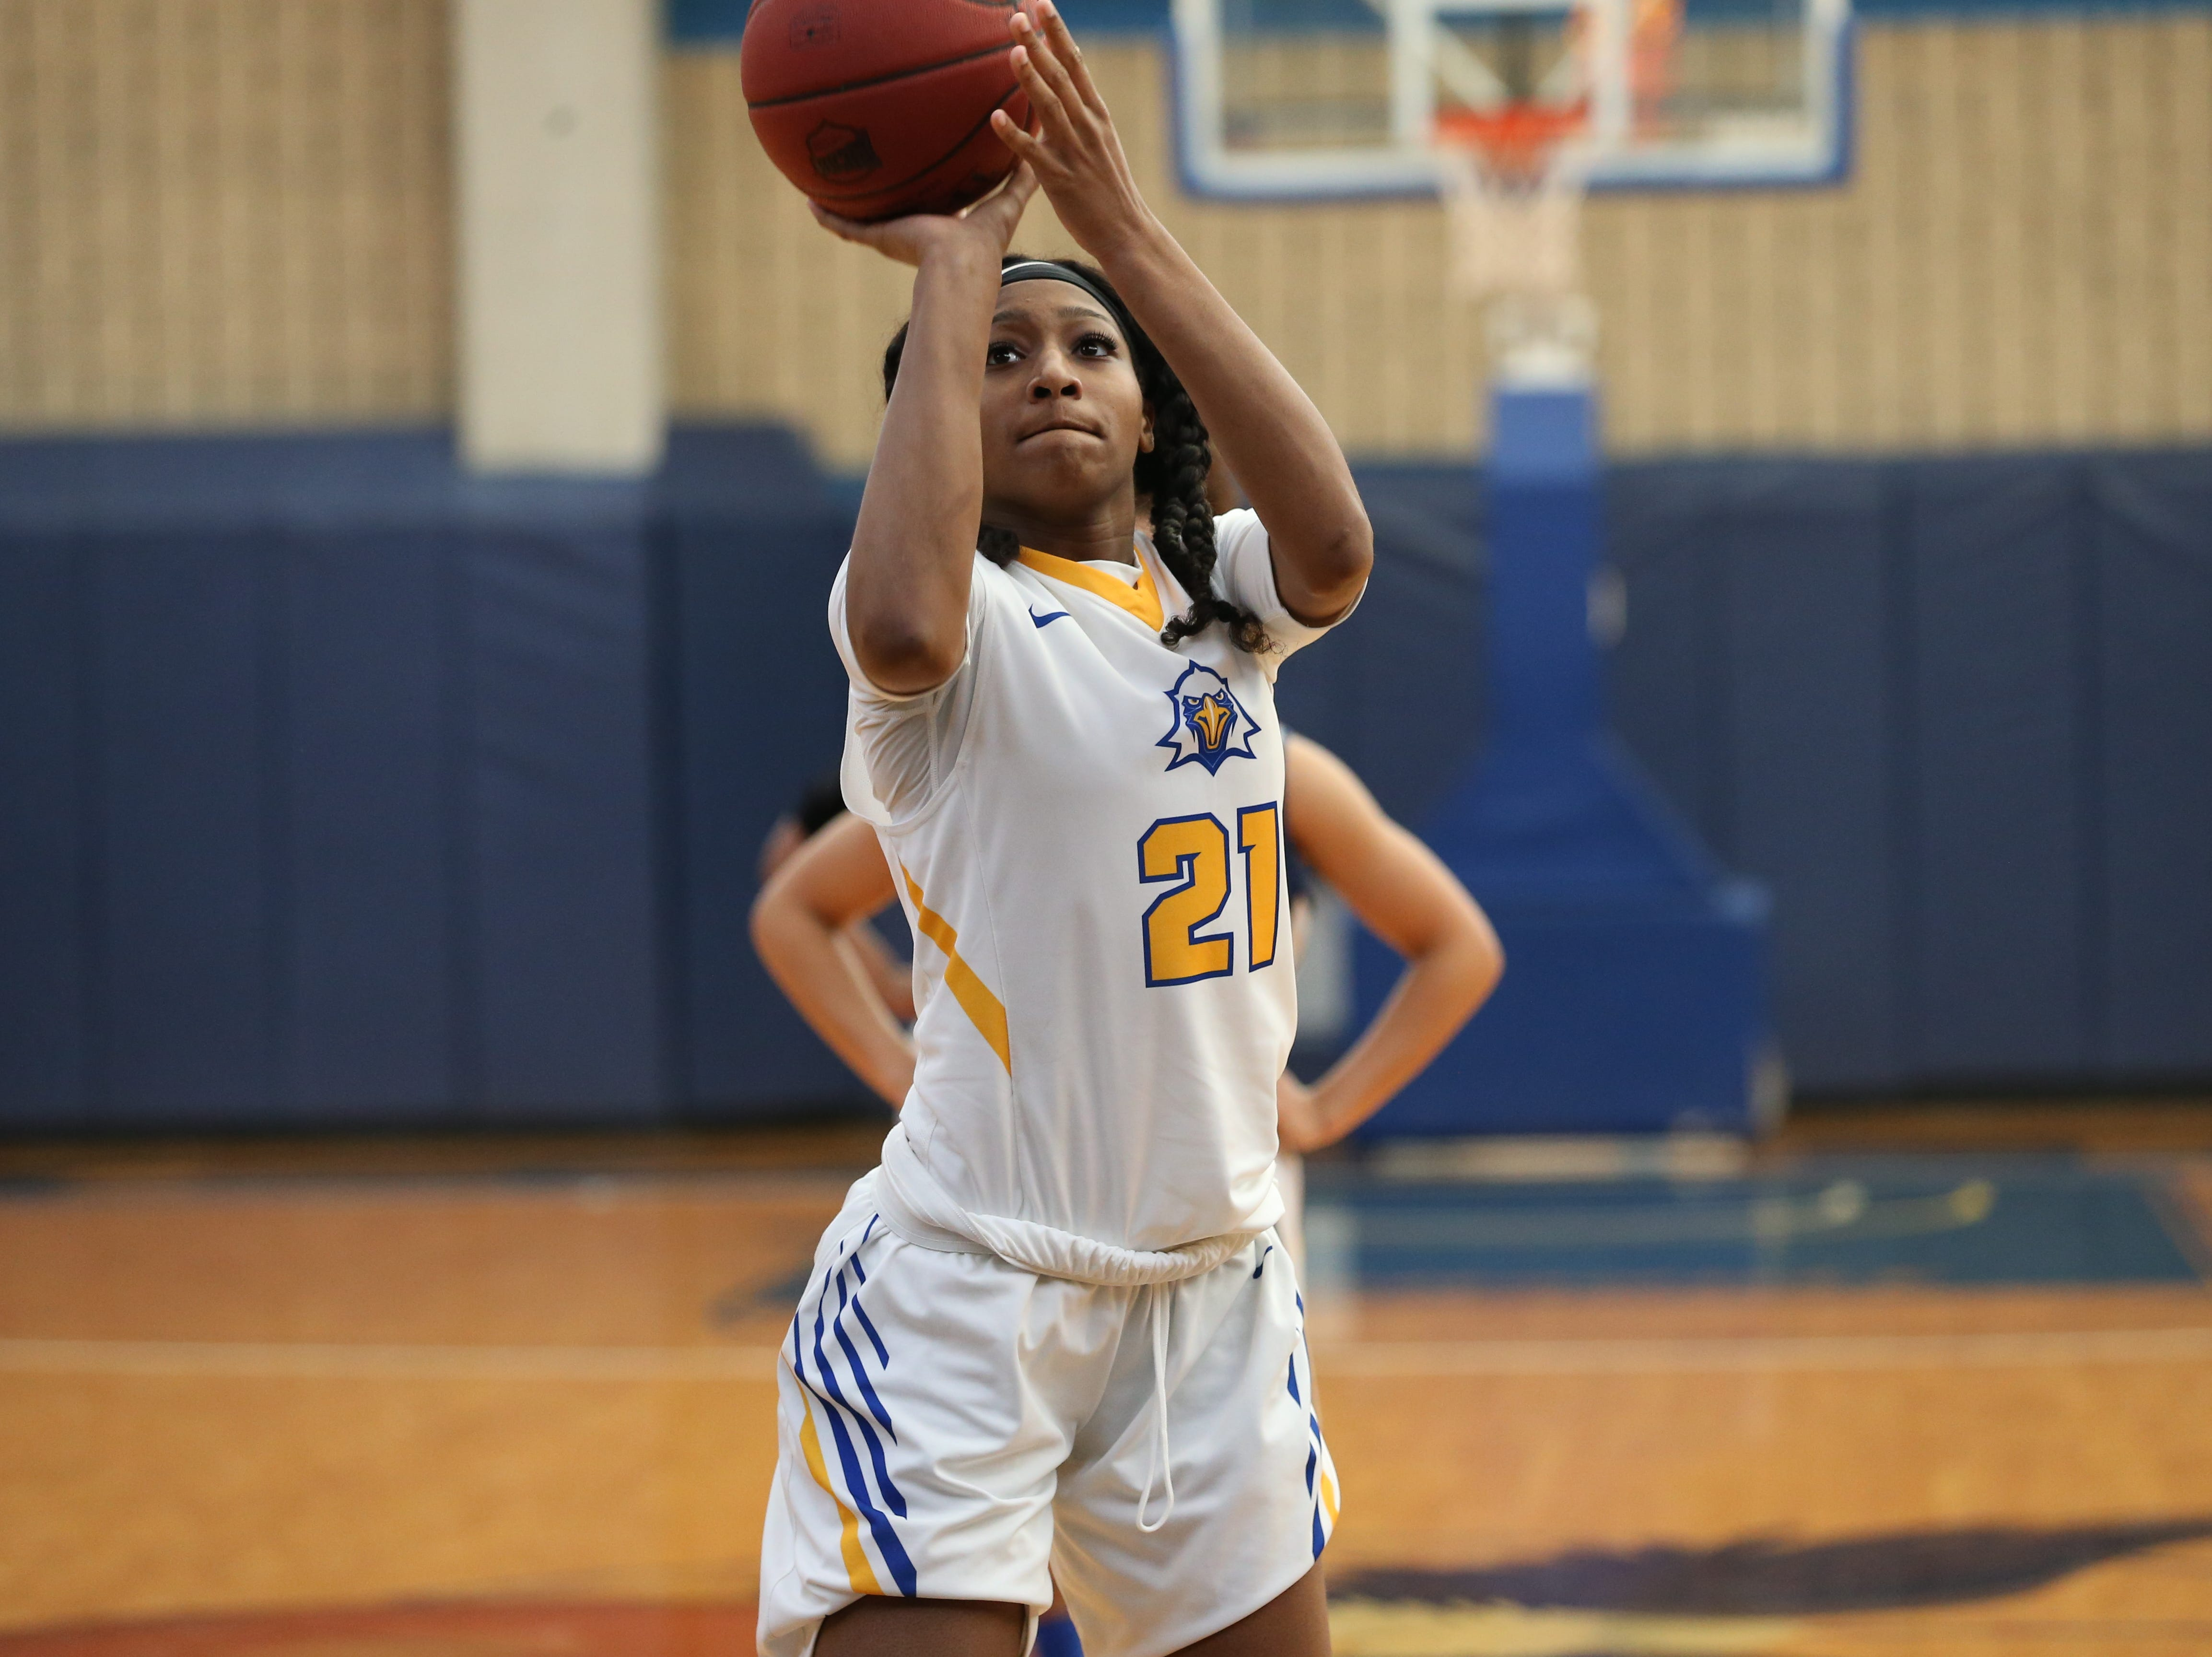 Tallahassee Community College Eagles forward Jada Perry (21) shoots a free throw. The Tallahassee Community College Eagles host the Gulf Coast State College Commodores in a conference match-up in the Eagledome, Saturday, Jan. 5, 2019.